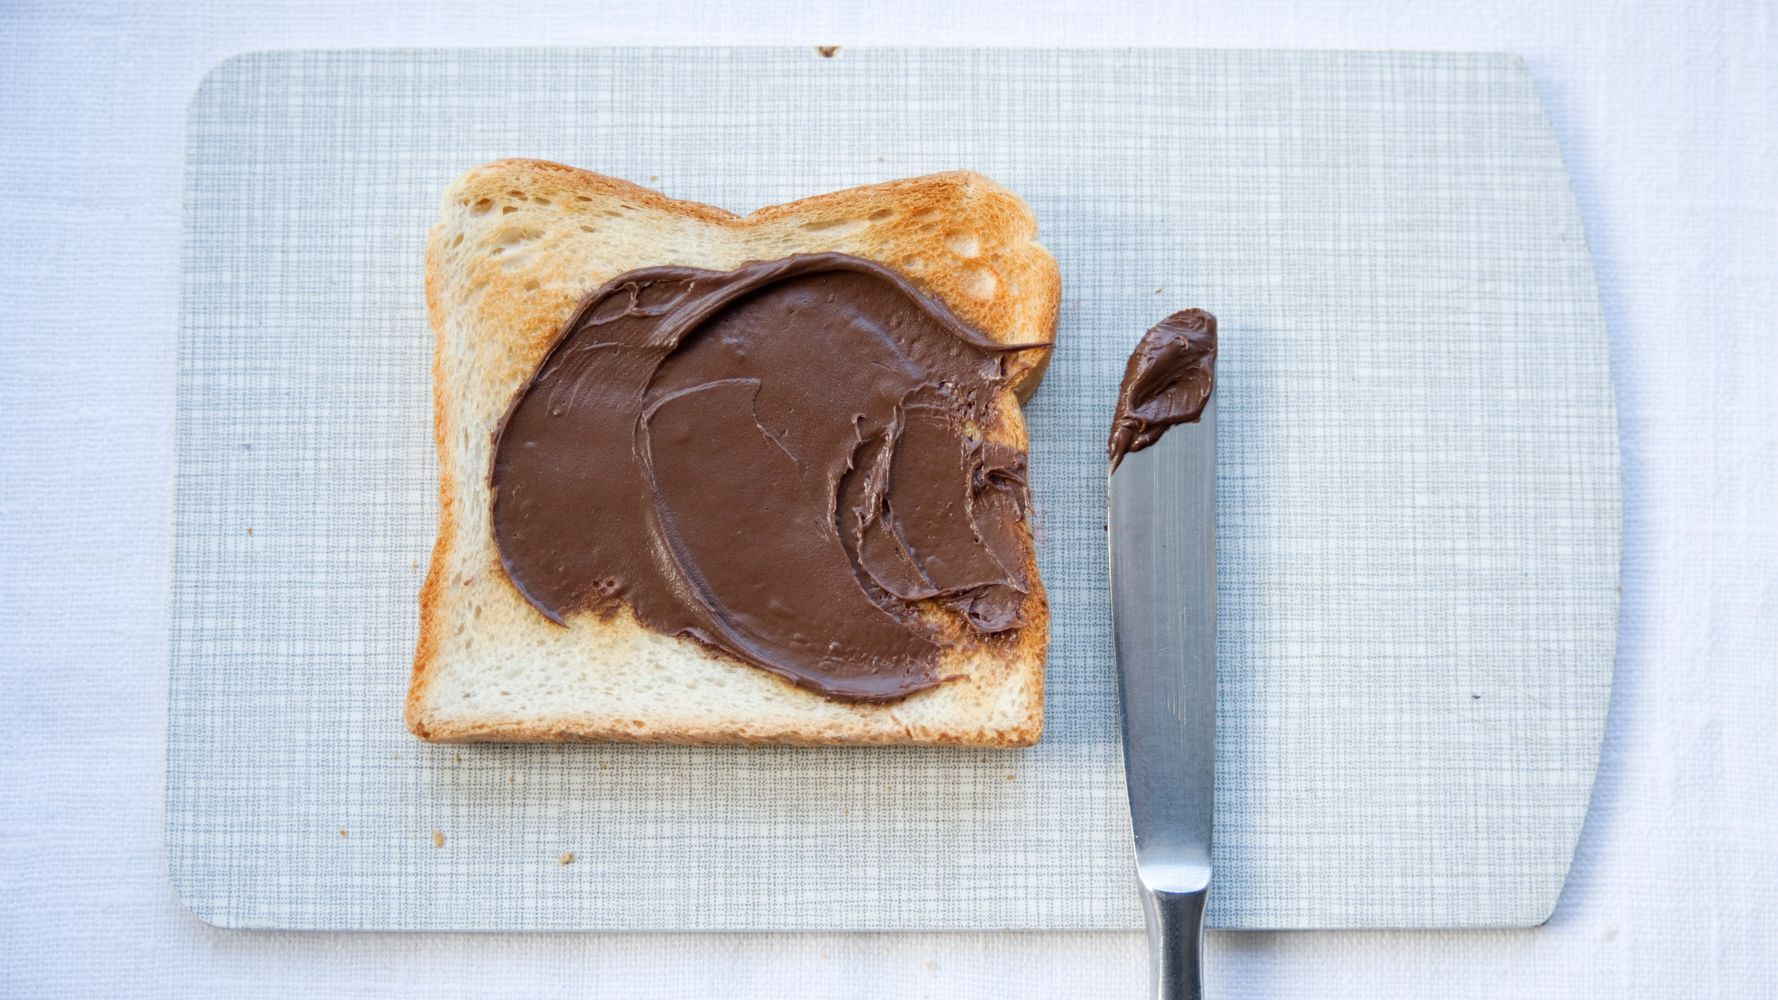 Nutella And Tesco Chocolate Spreads Contain 57 Teaspoons Of